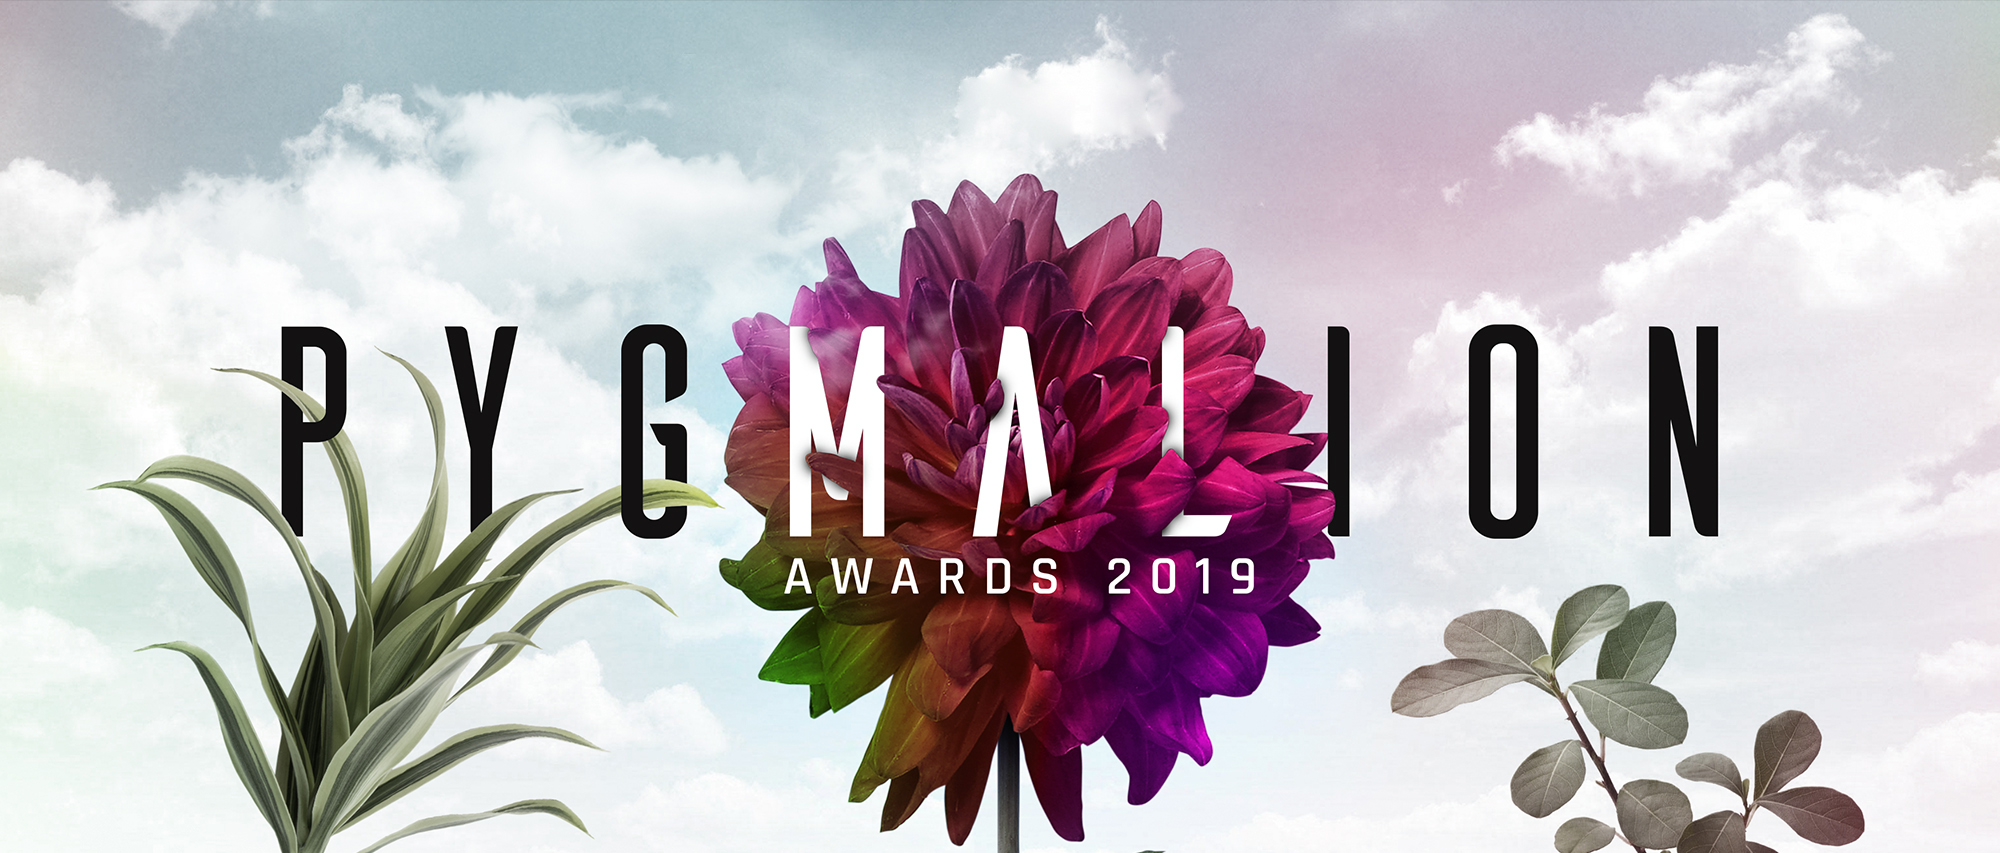 PYGMALION 2019 Call for Entries